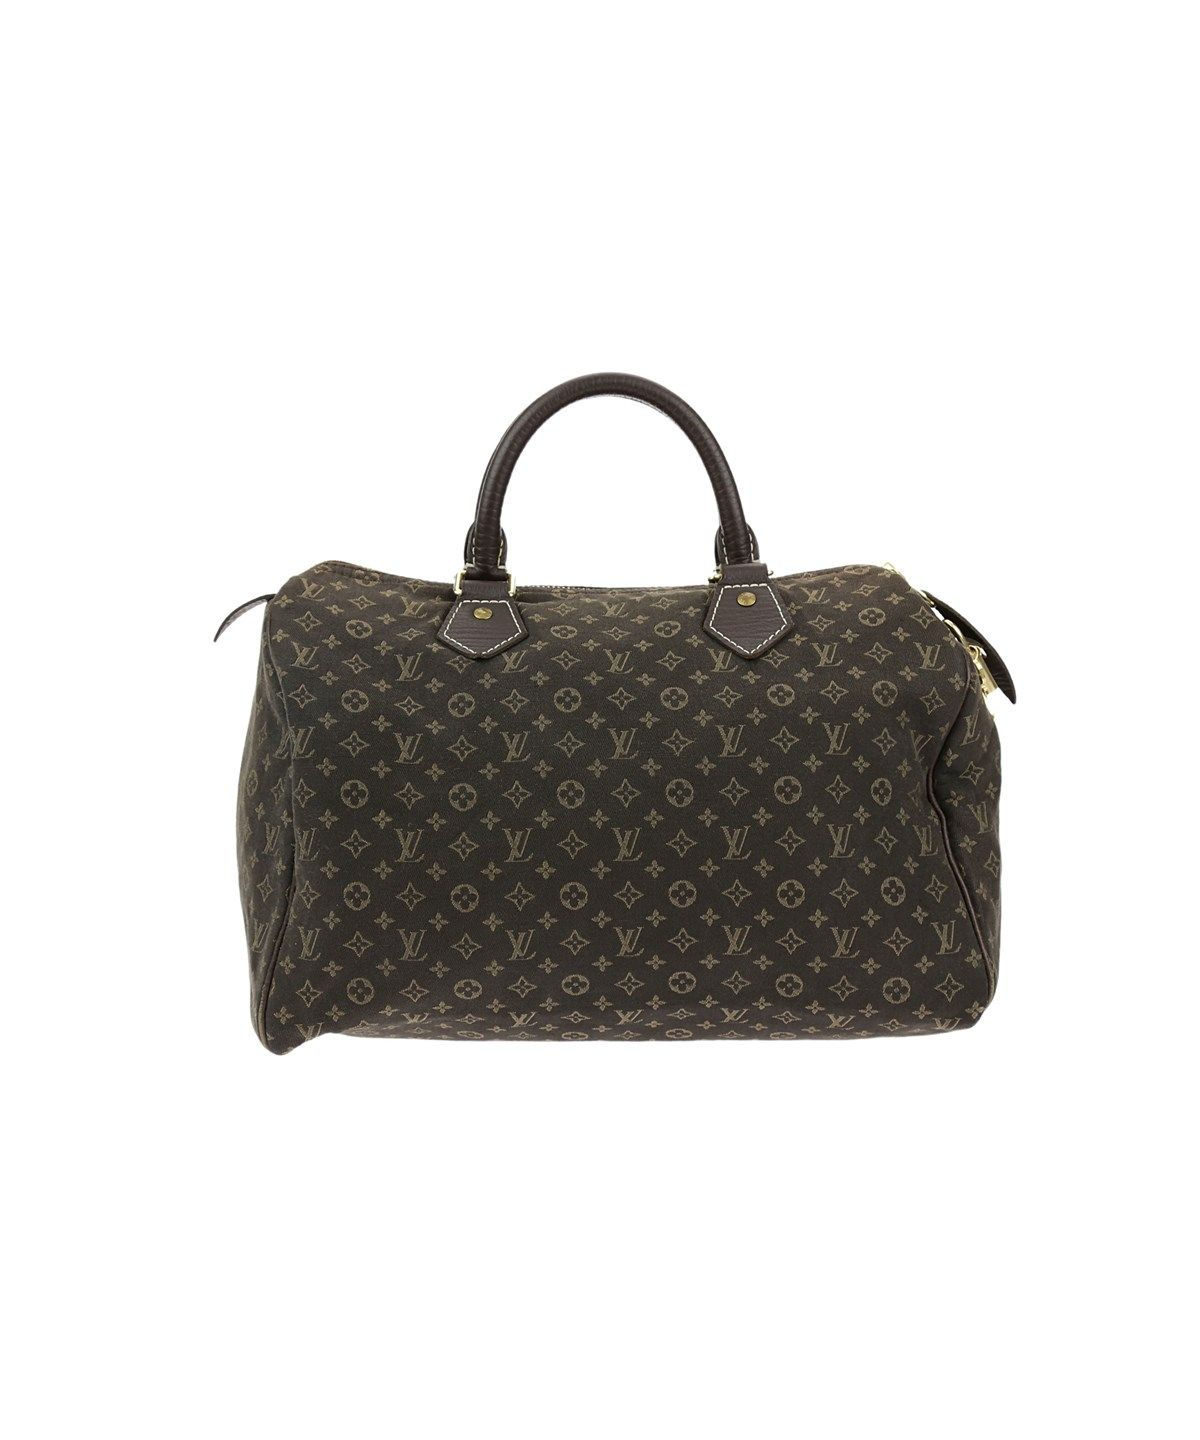 ecf94f308d4 LOUIS VUITTON Monogram Mini Lin Ebene Speedy 30 .  louisvuitton  bags   leather  travel bags  weekend  canvas